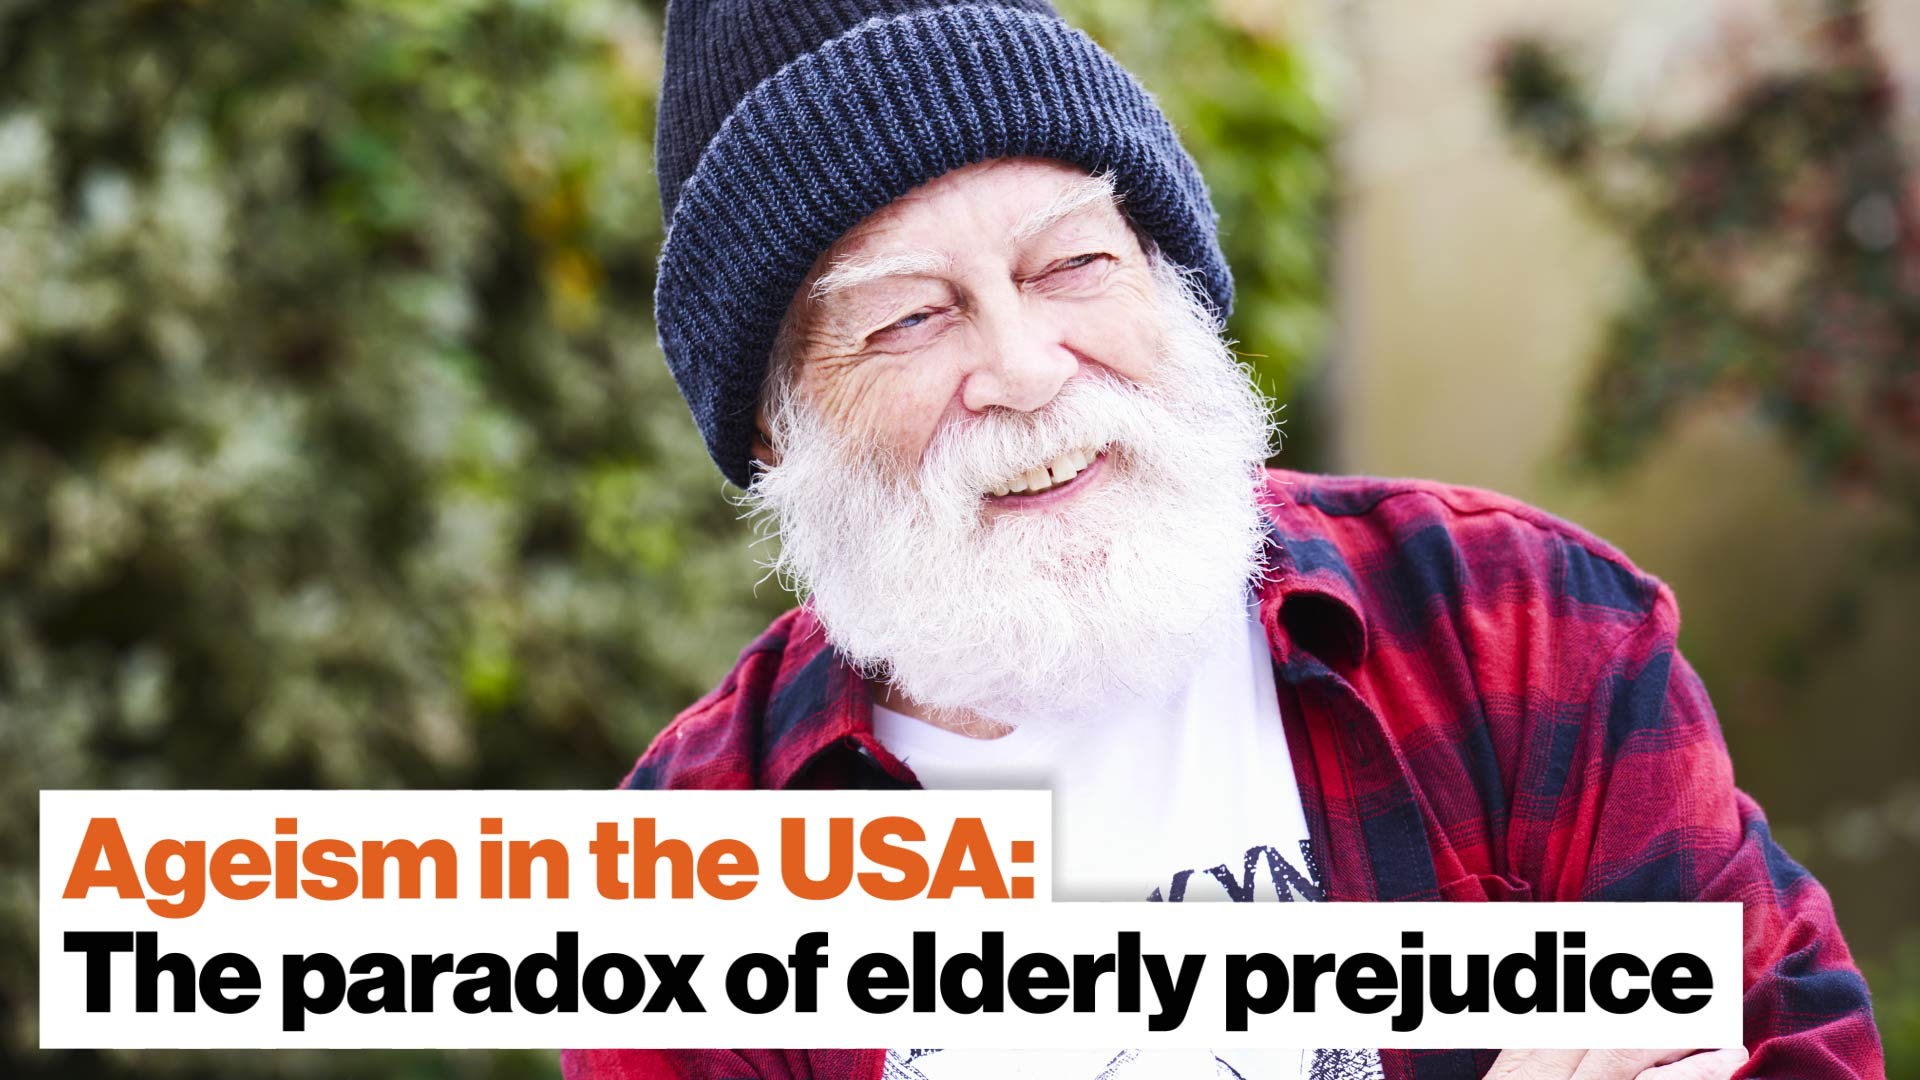 Ageism in the USA: The paradox of prejudice against the elderly